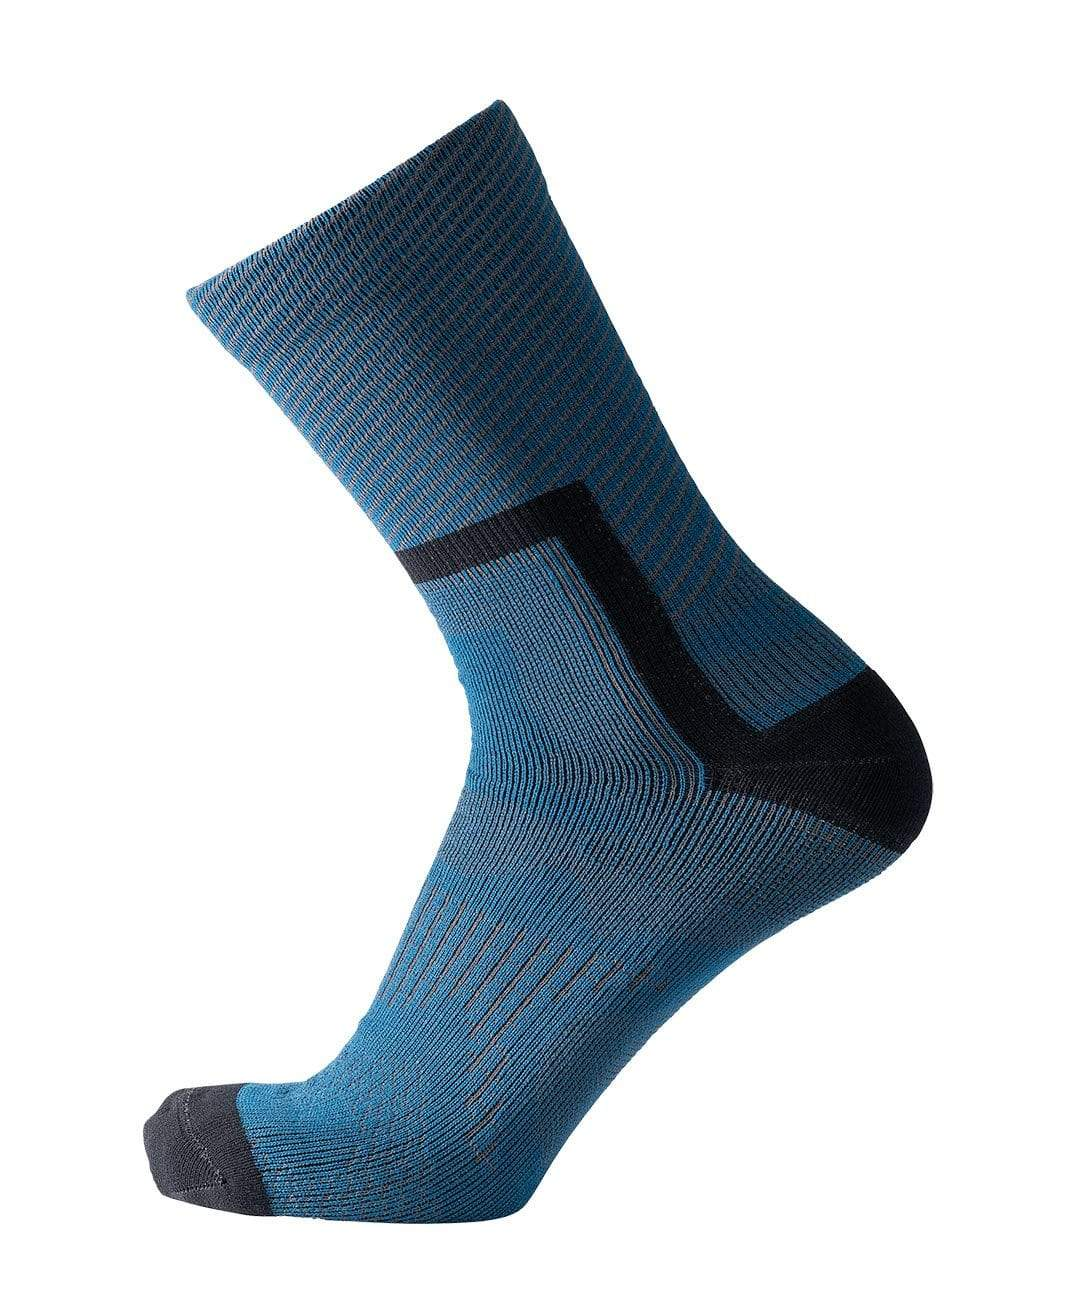 Crosspoint Ultra-Light Waterproof Socks - Wool Blend